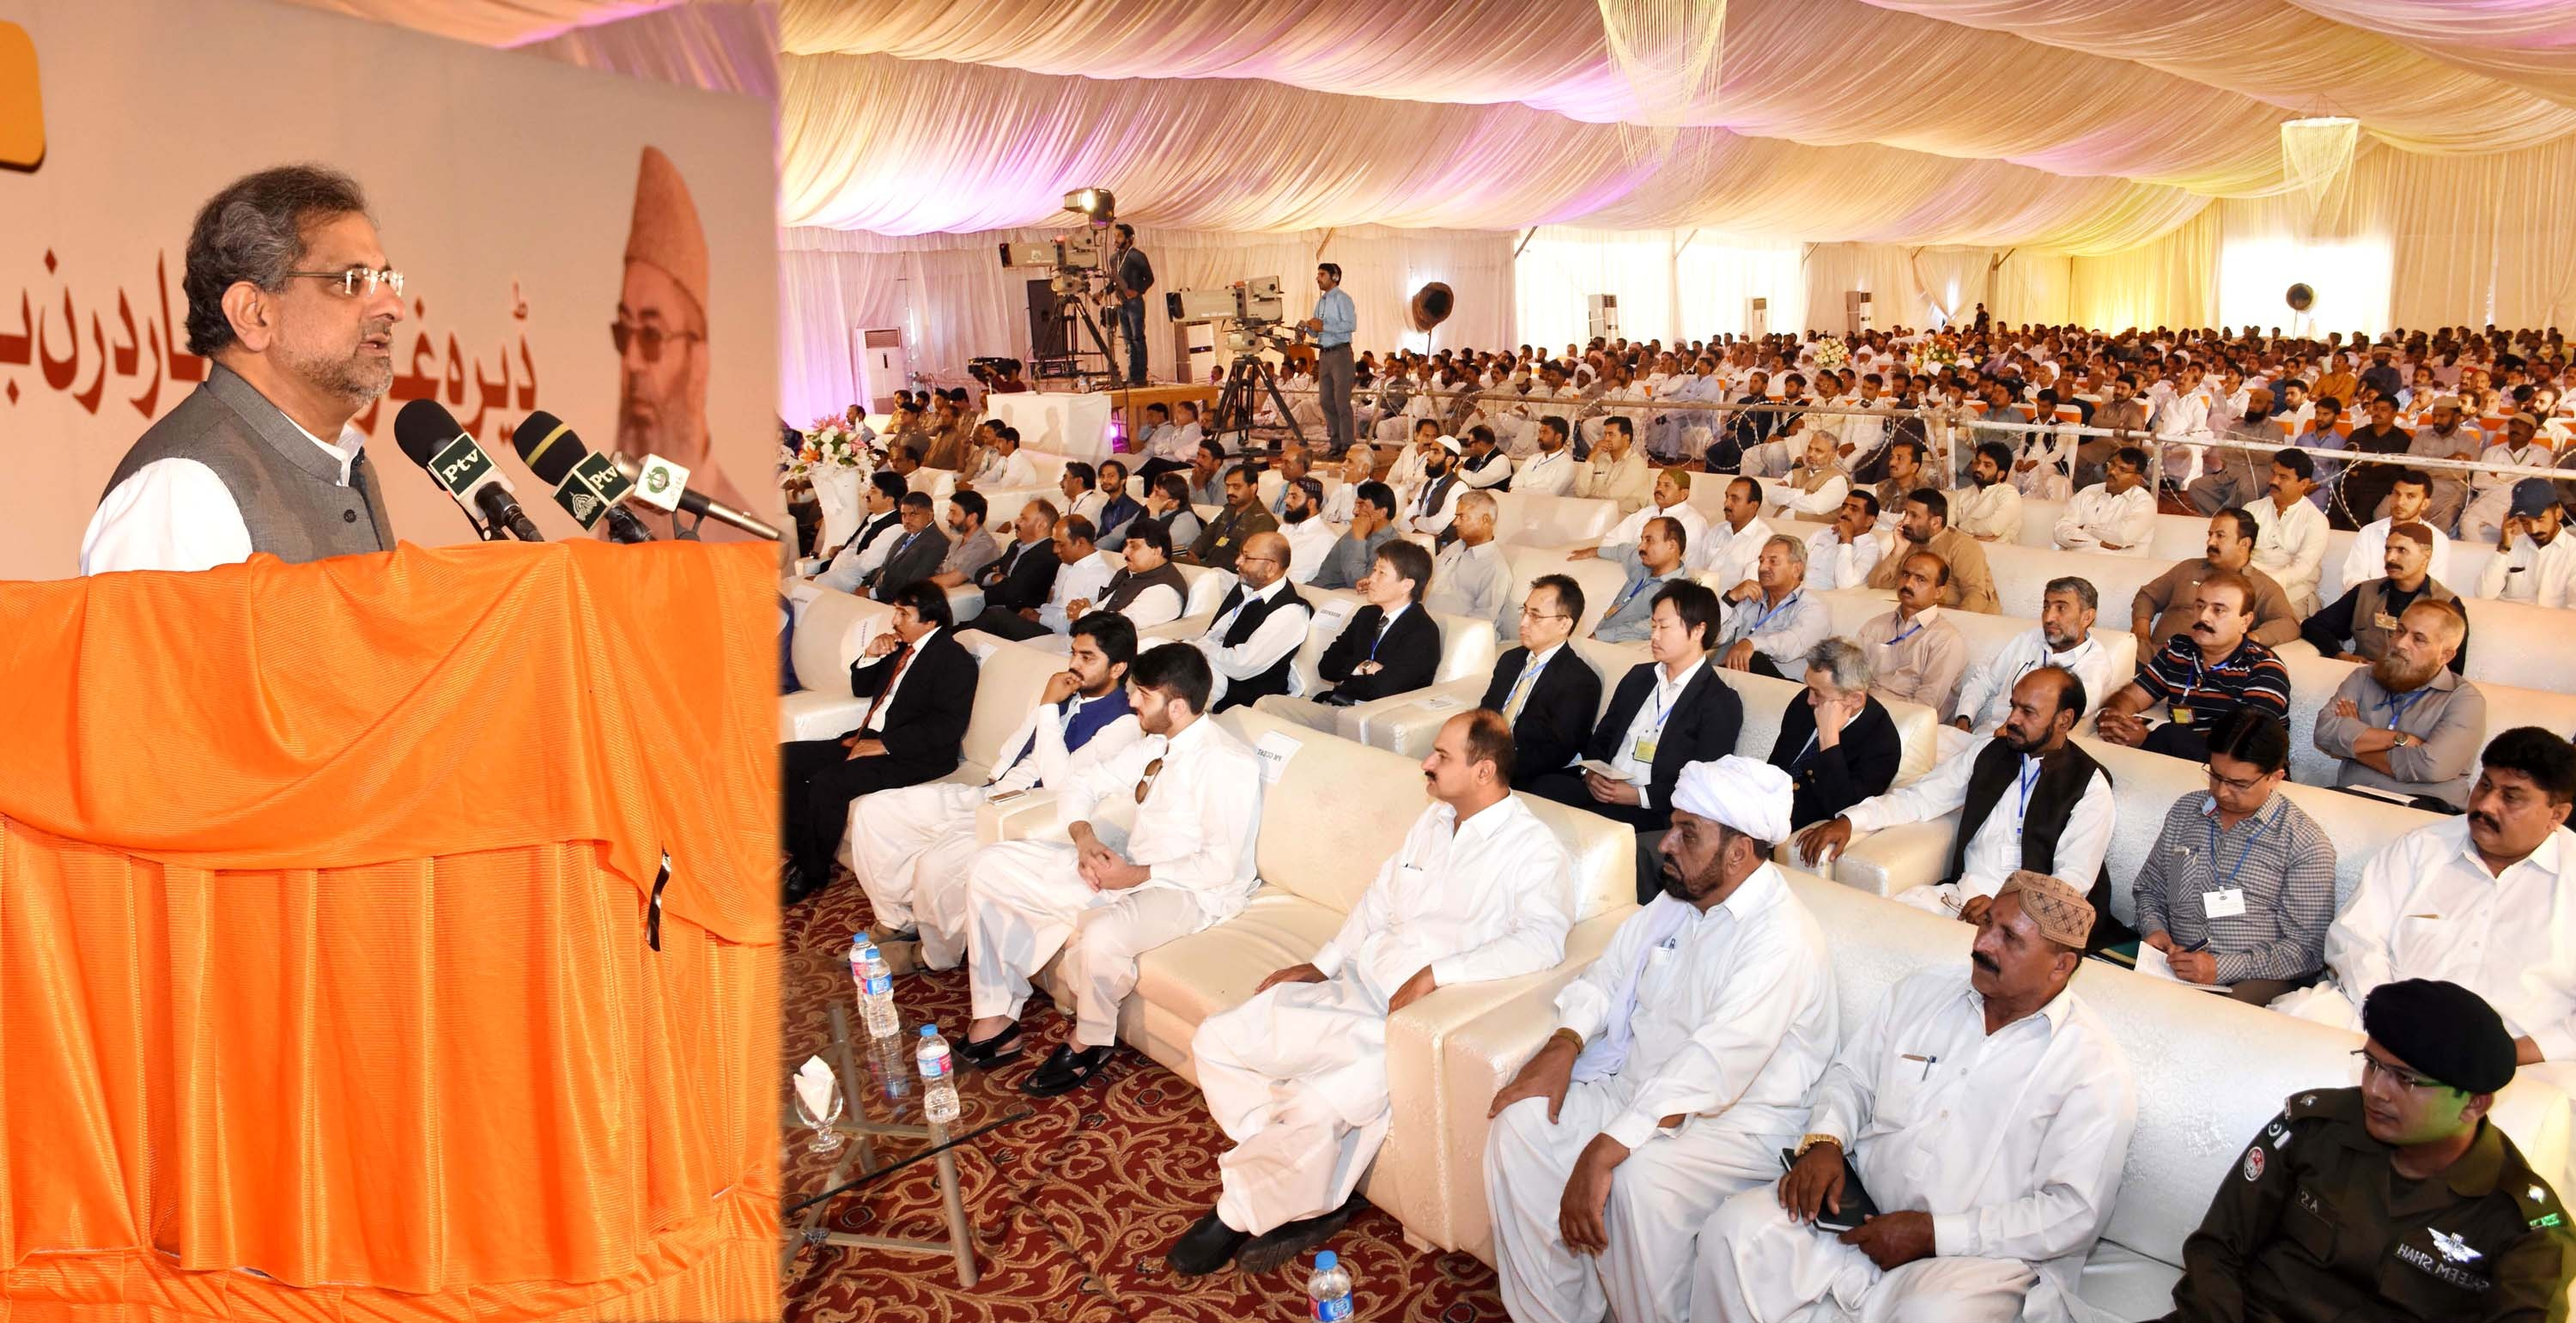 Prime Minister Shahid Khaqan Abbasi Addressing a Public Gathering during the Ground-Breaking Ceremony of Dera Ghazi Khan Northern Bypass and Rakhi Gajj Bewata Section-1 in Dera Ghazi Khan on March 31, 2018